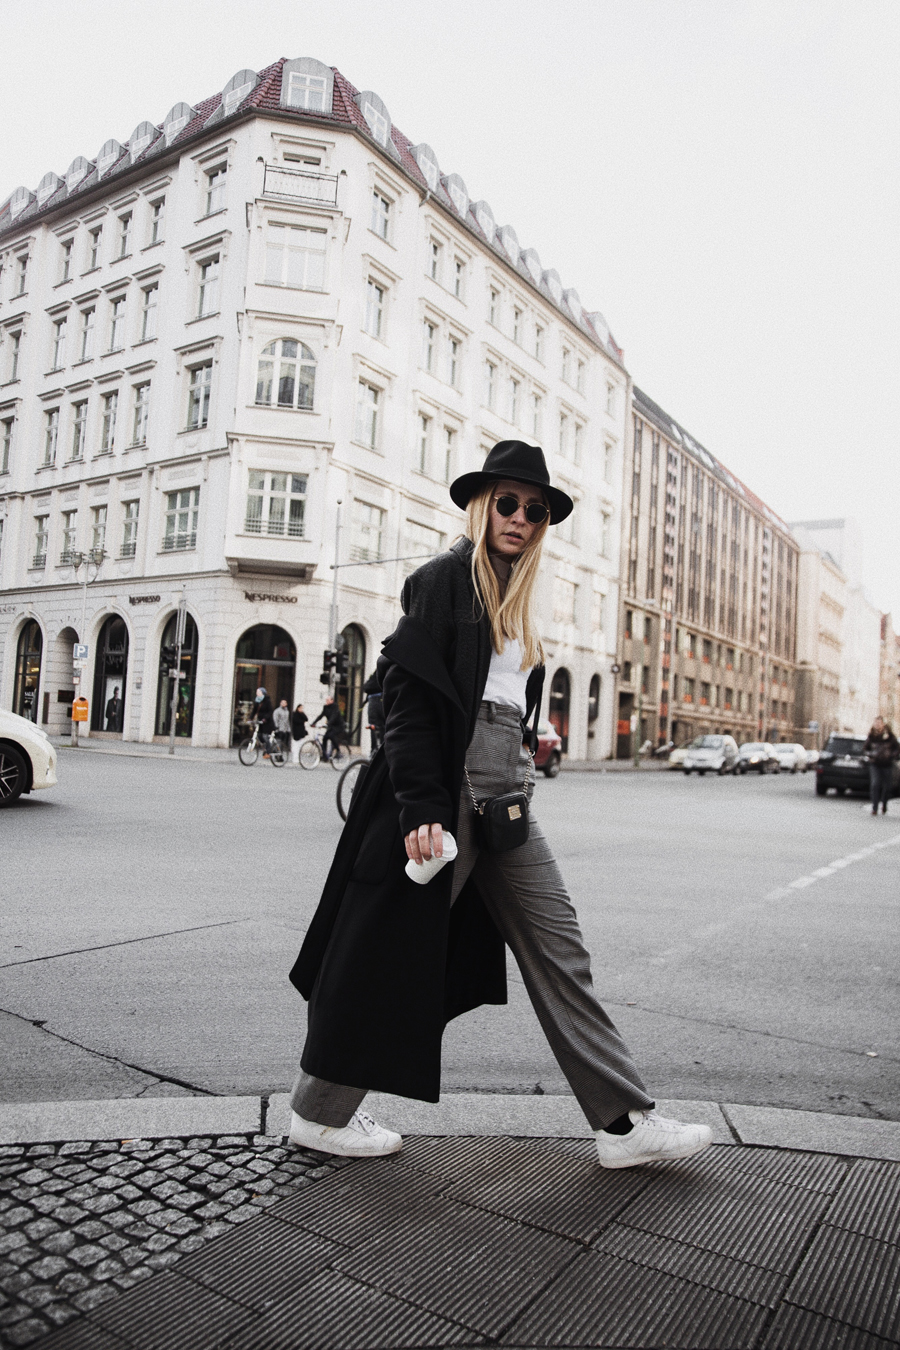 ootd-outfit-streetstyle-funktionschnitt-rominamey-coffee-walk-c-berlin